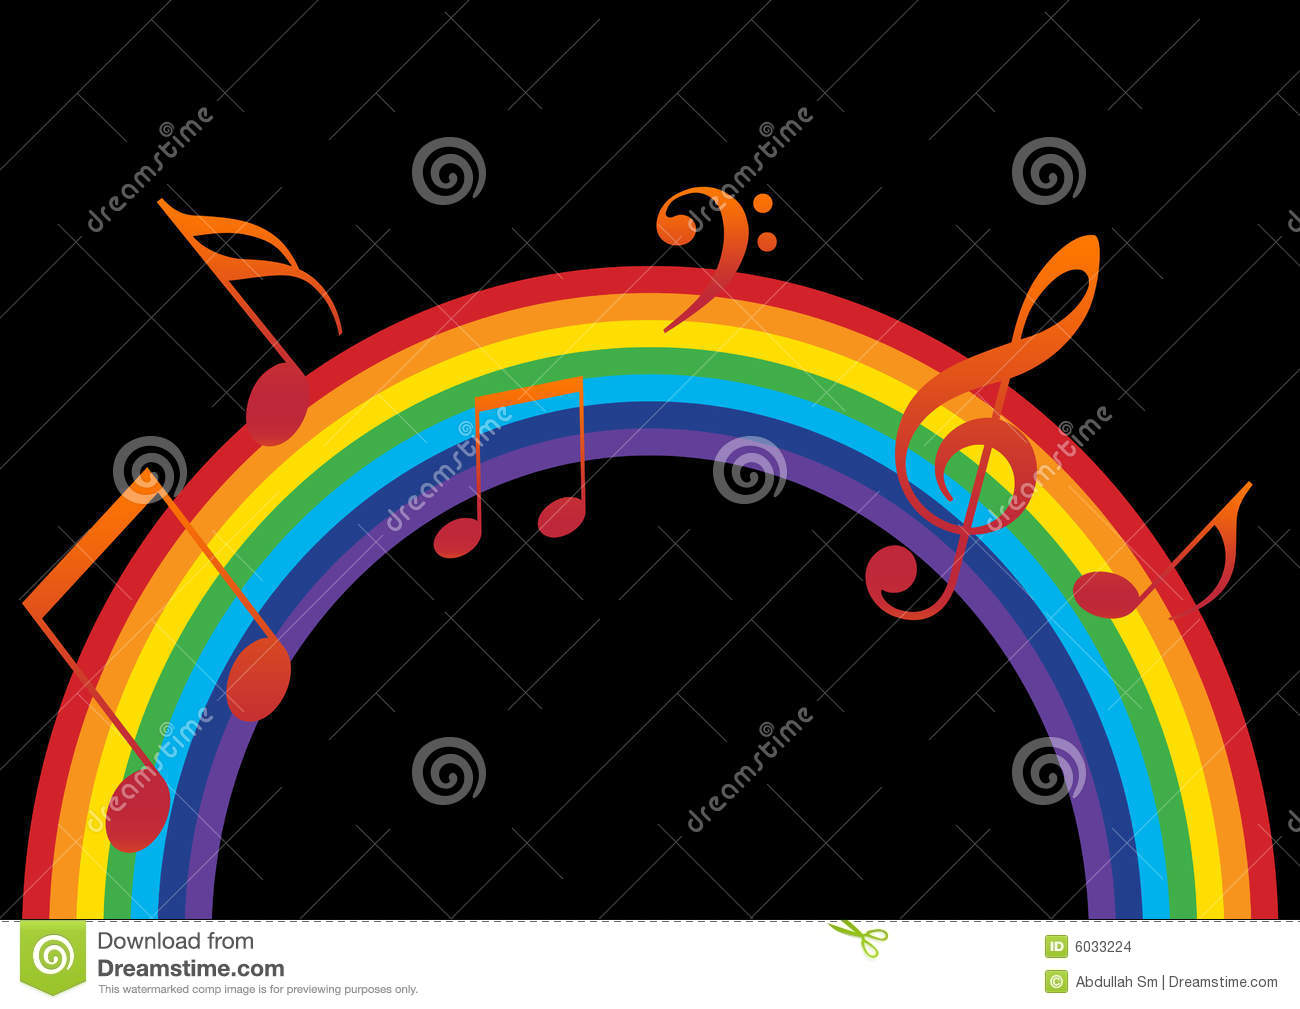 Rainbow Notes On Light Background Stock: Rainbow Music Stock Illustration. Illustration Of